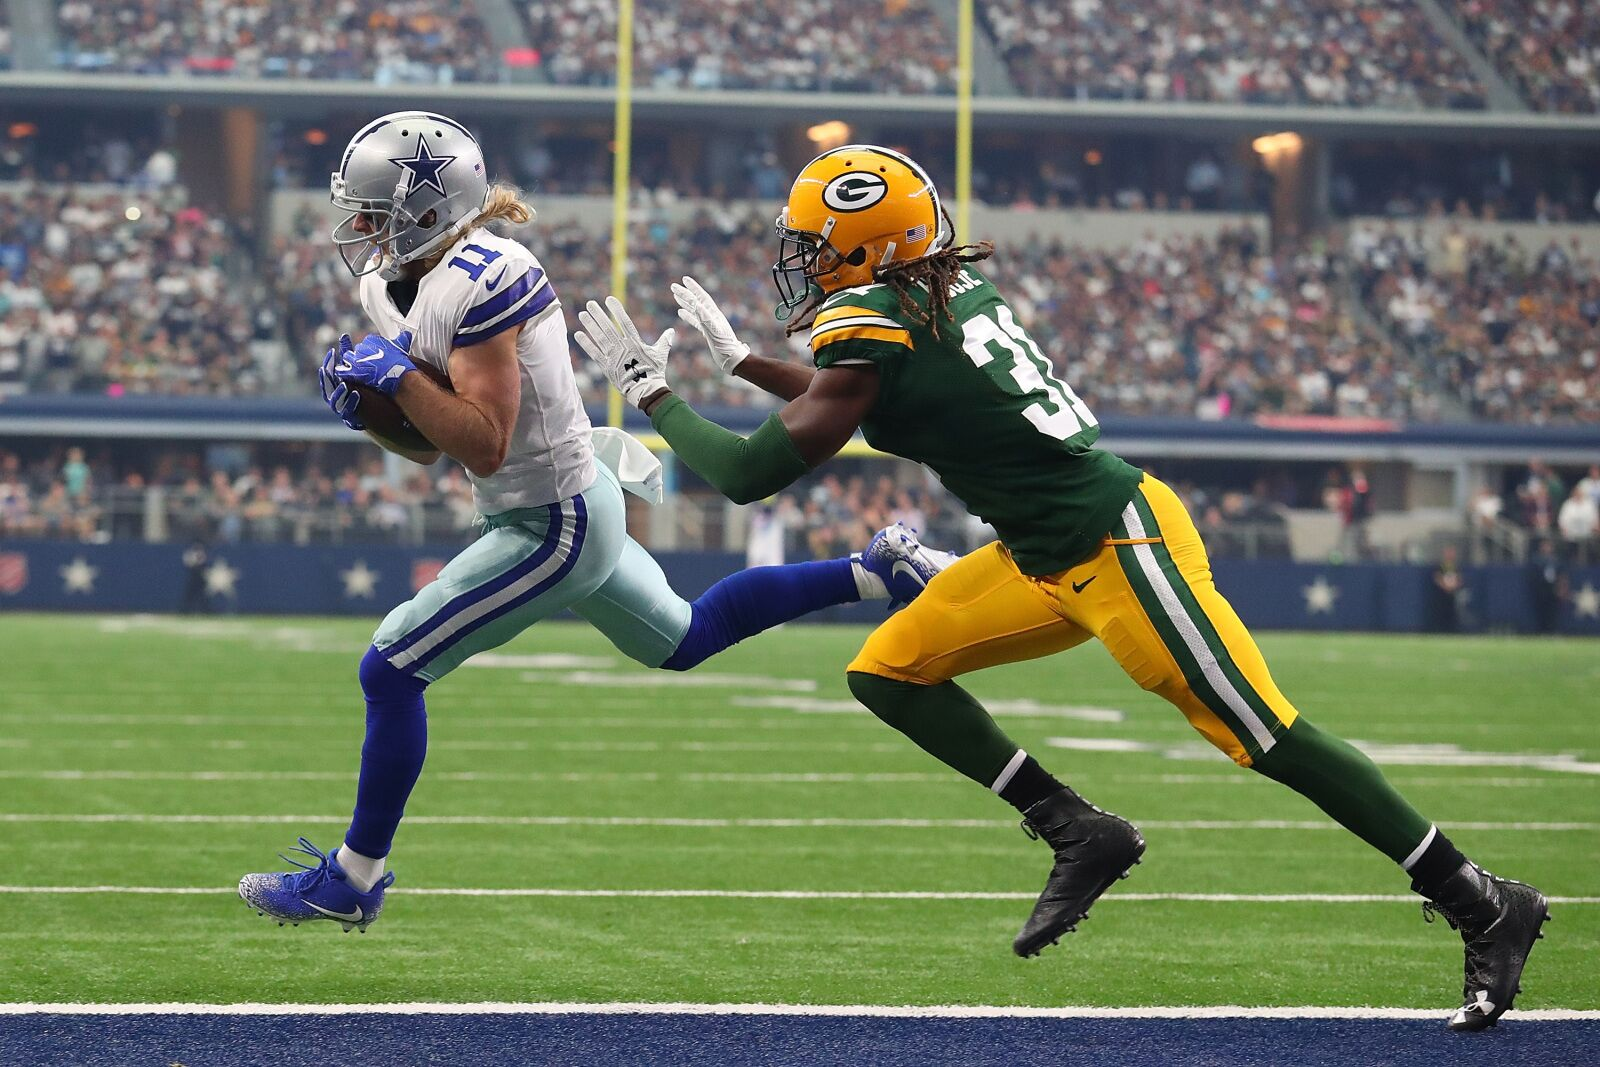 Arlington Tx 26 8211 October 08 Cole Beasley 11 Of The Dallas Cowboys Pulls In A P Ahead Davon House 31 Green Bay Packers On Way To